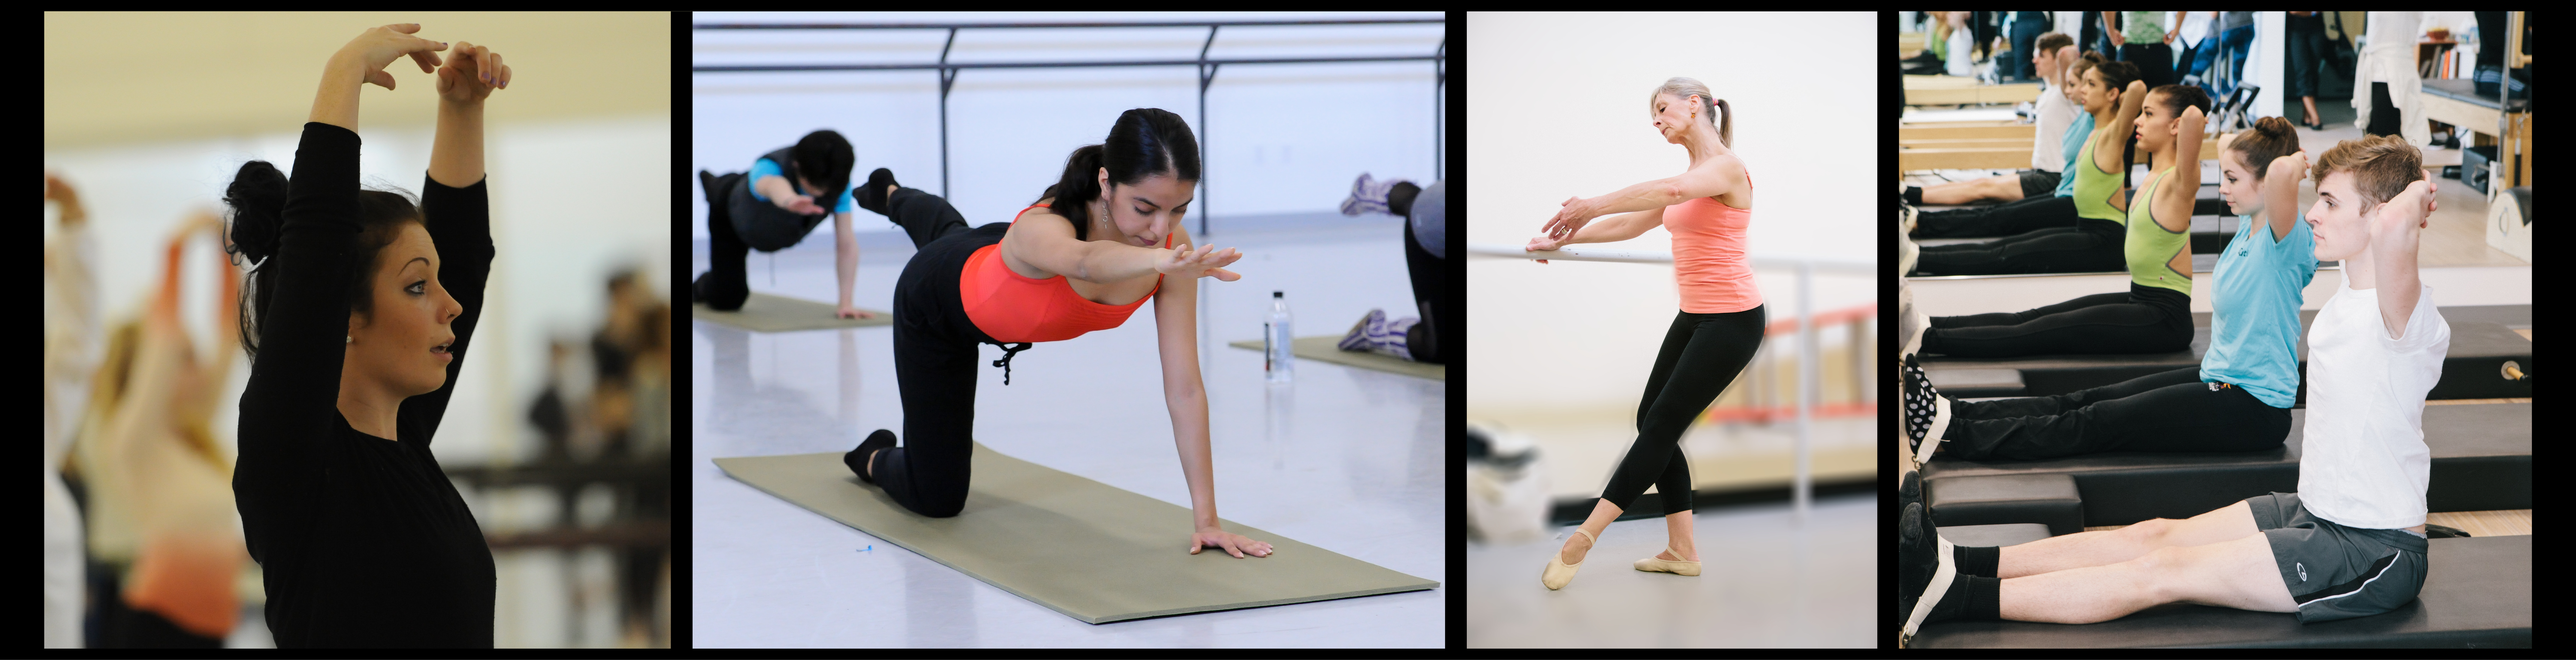 Dance And Fitness Community Classes At Pittsburgh Ballet Theatre